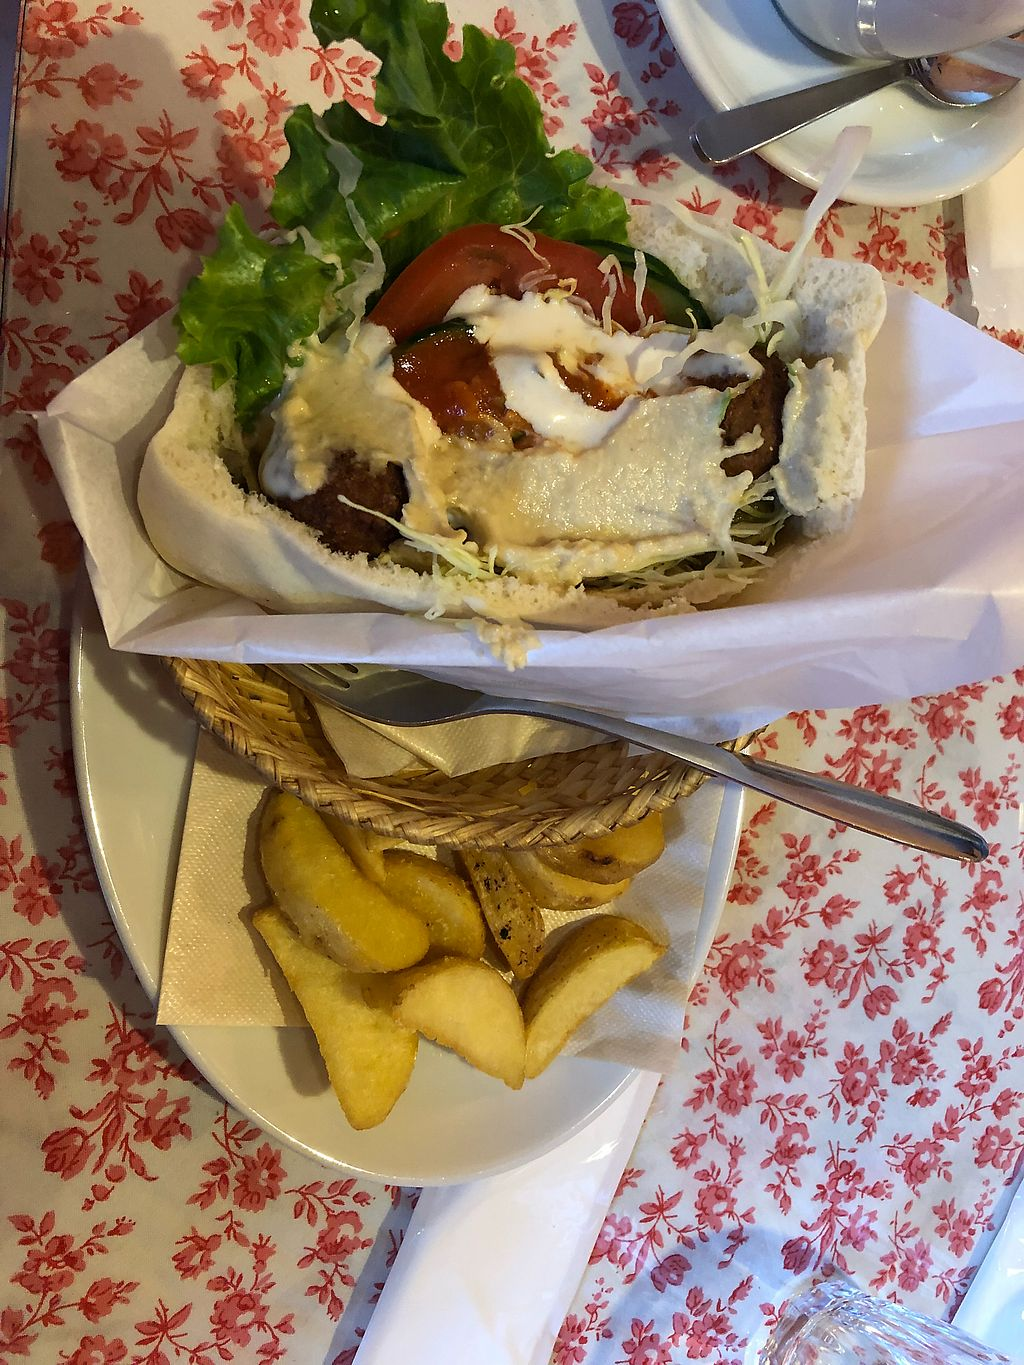 """Photo of Falafel Garden  by <a href=""""/members/profile/Adalim420"""">Adalim420</a> <br/>Vegan falafel set <br/> March 8, 2018  - <a href='/contact/abuse/image/26257/368120'>Report</a>"""